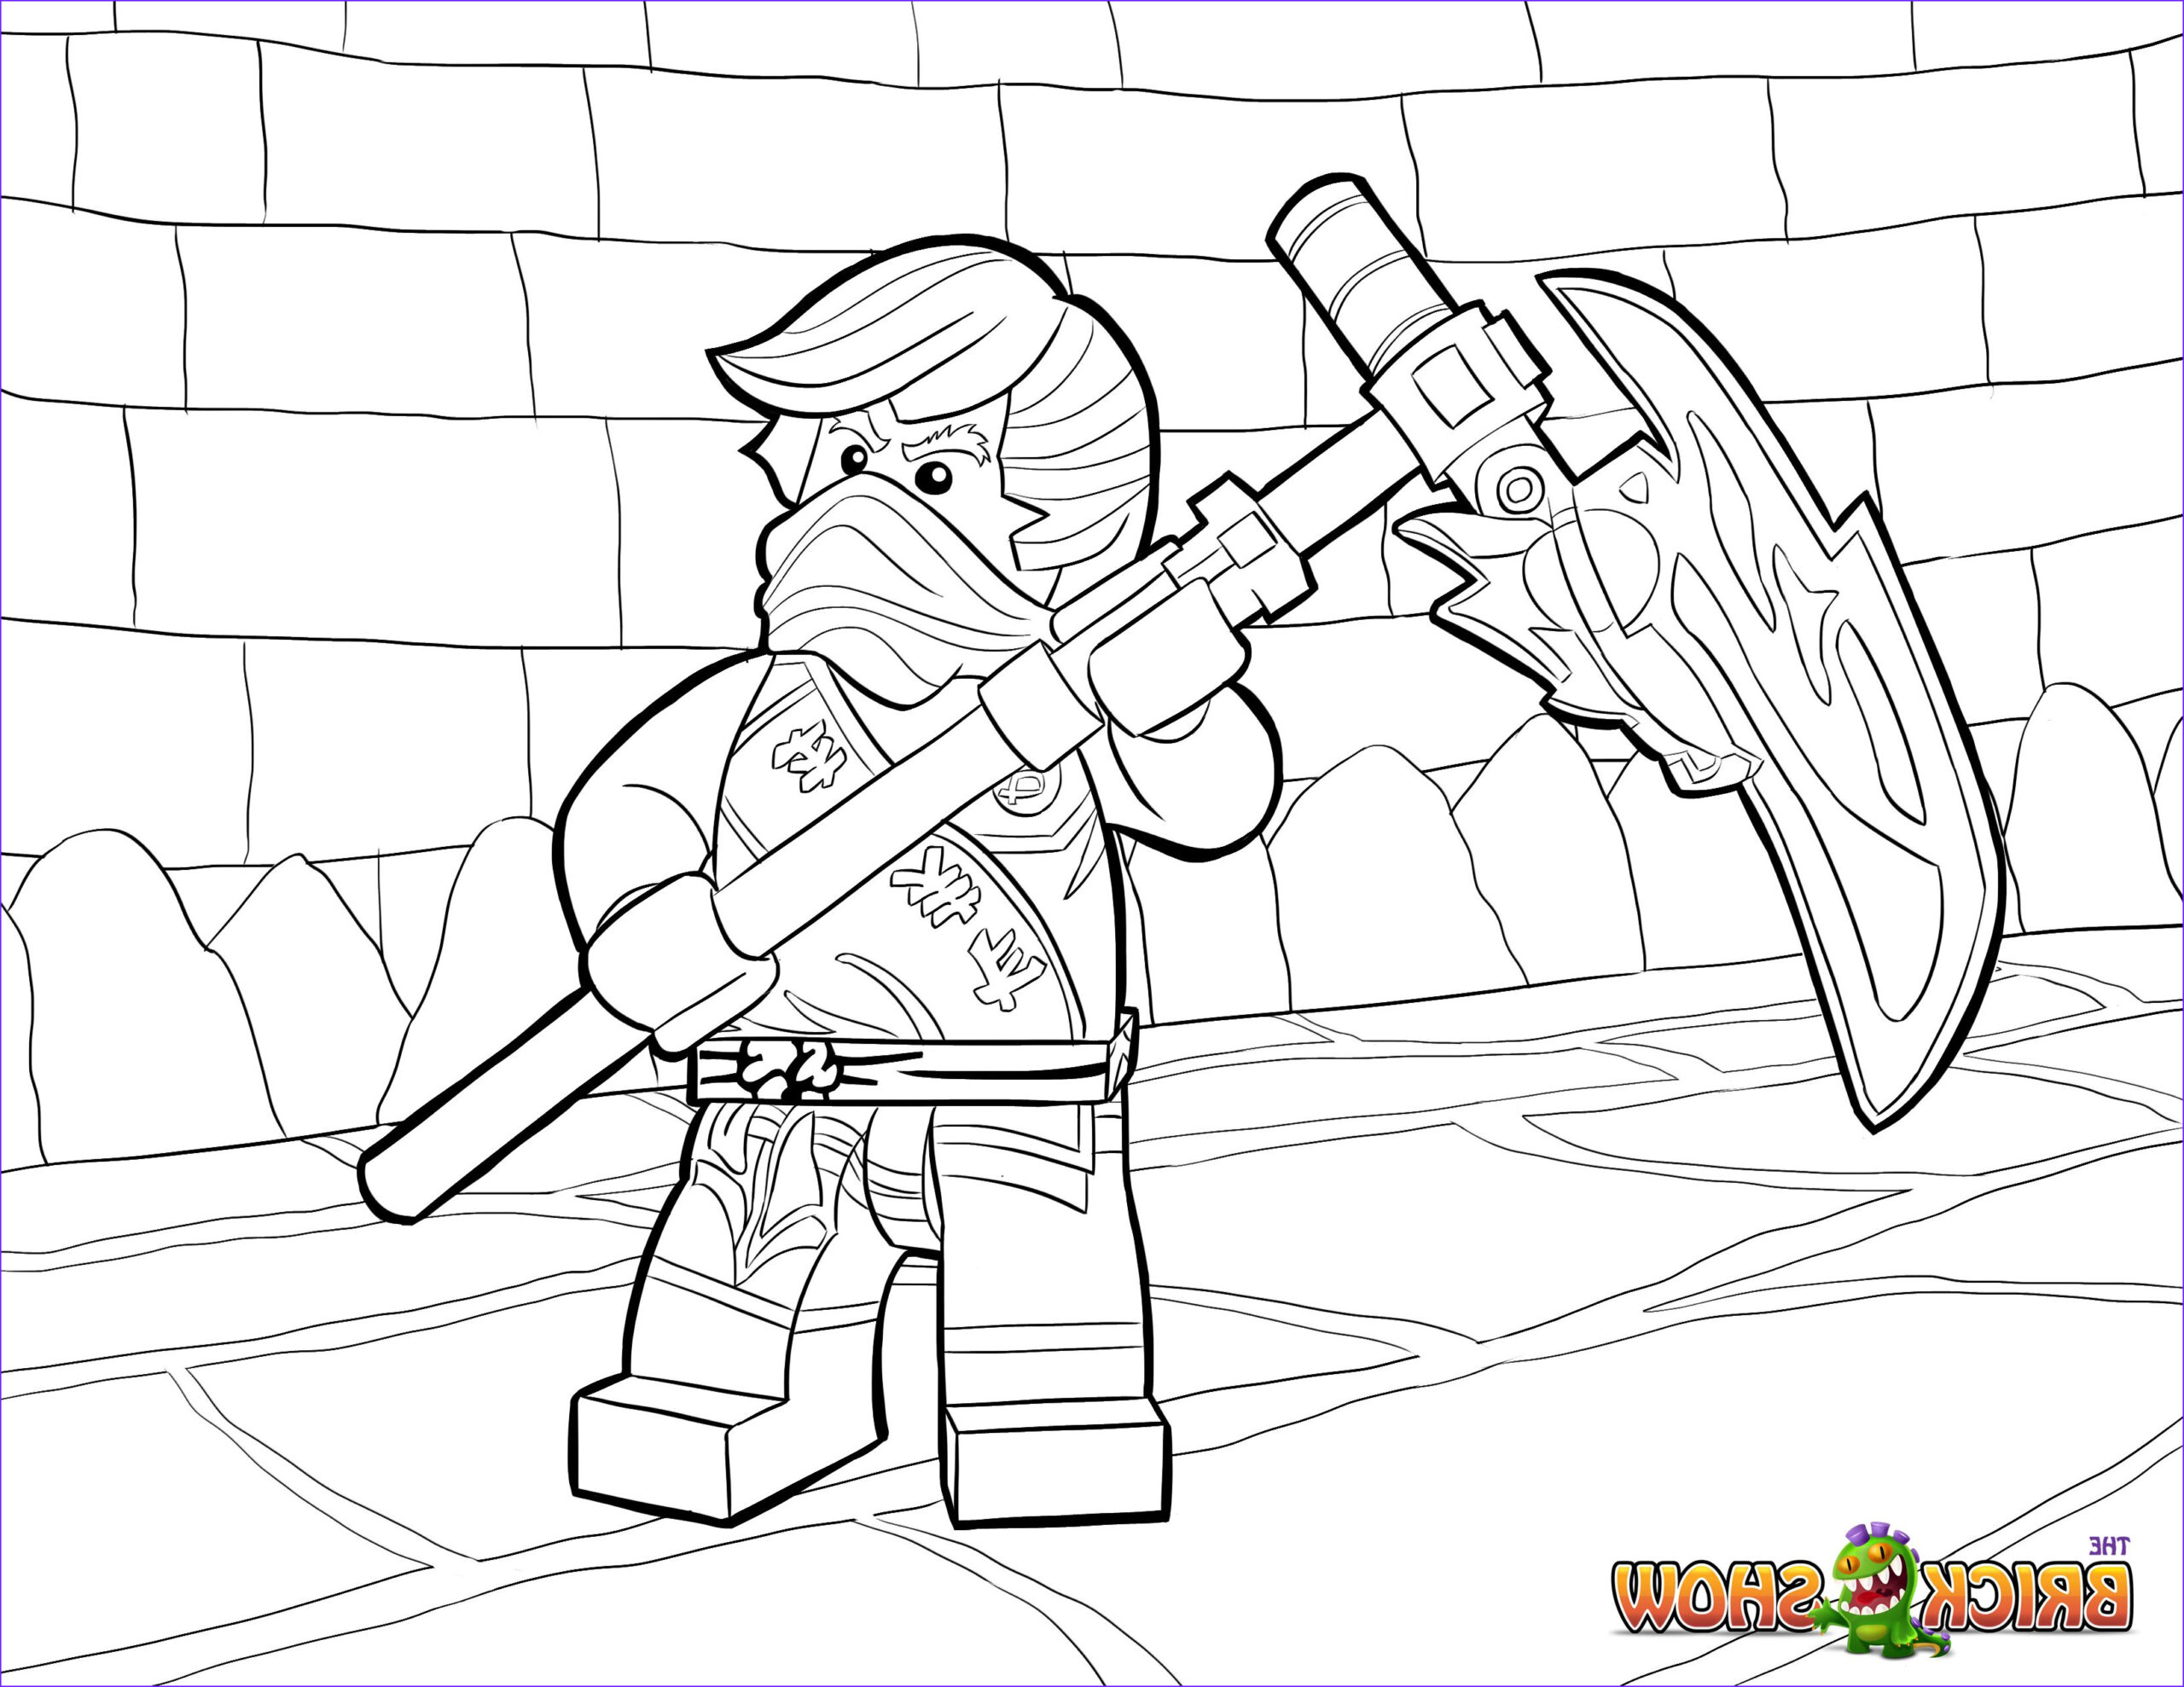 Coloring Bricks Luxury Photography Brick Coloring Page Coloring Home